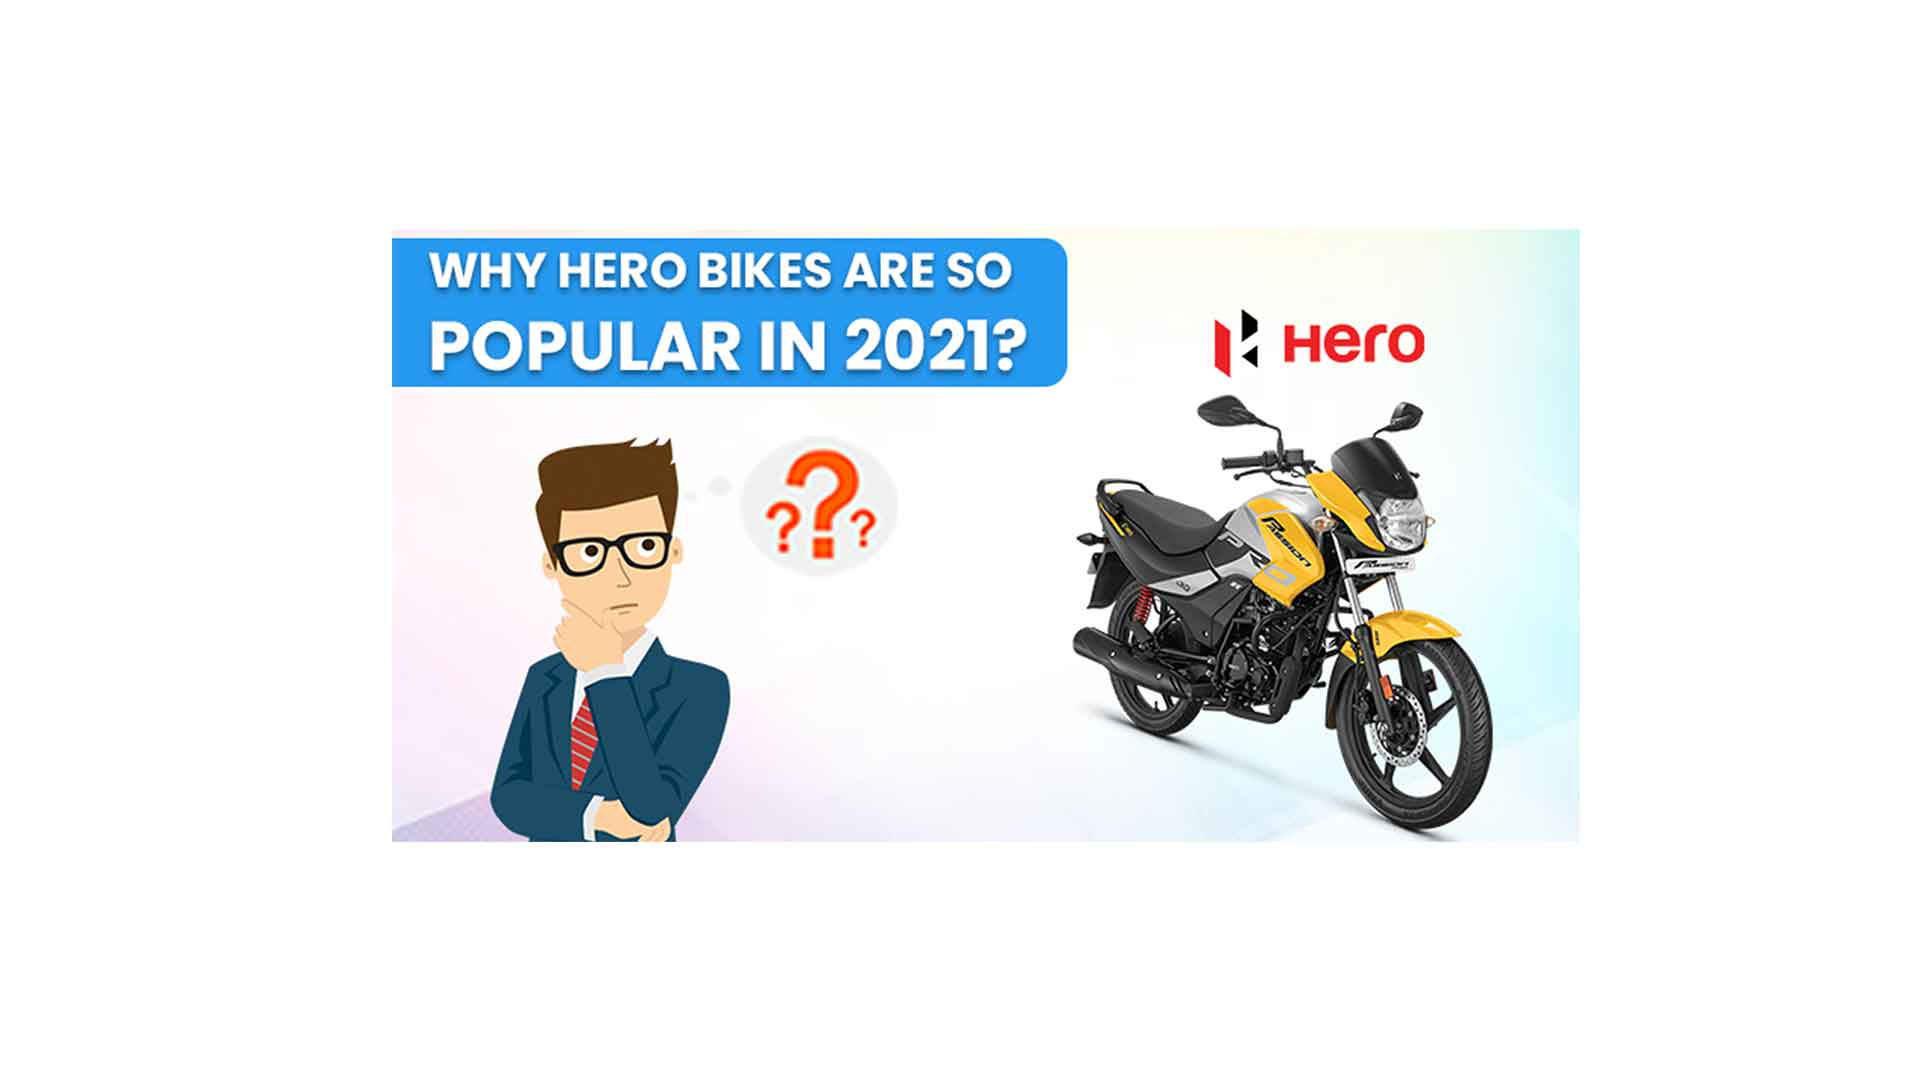 Why Hero bikes are so popular among youngsters in 2021?